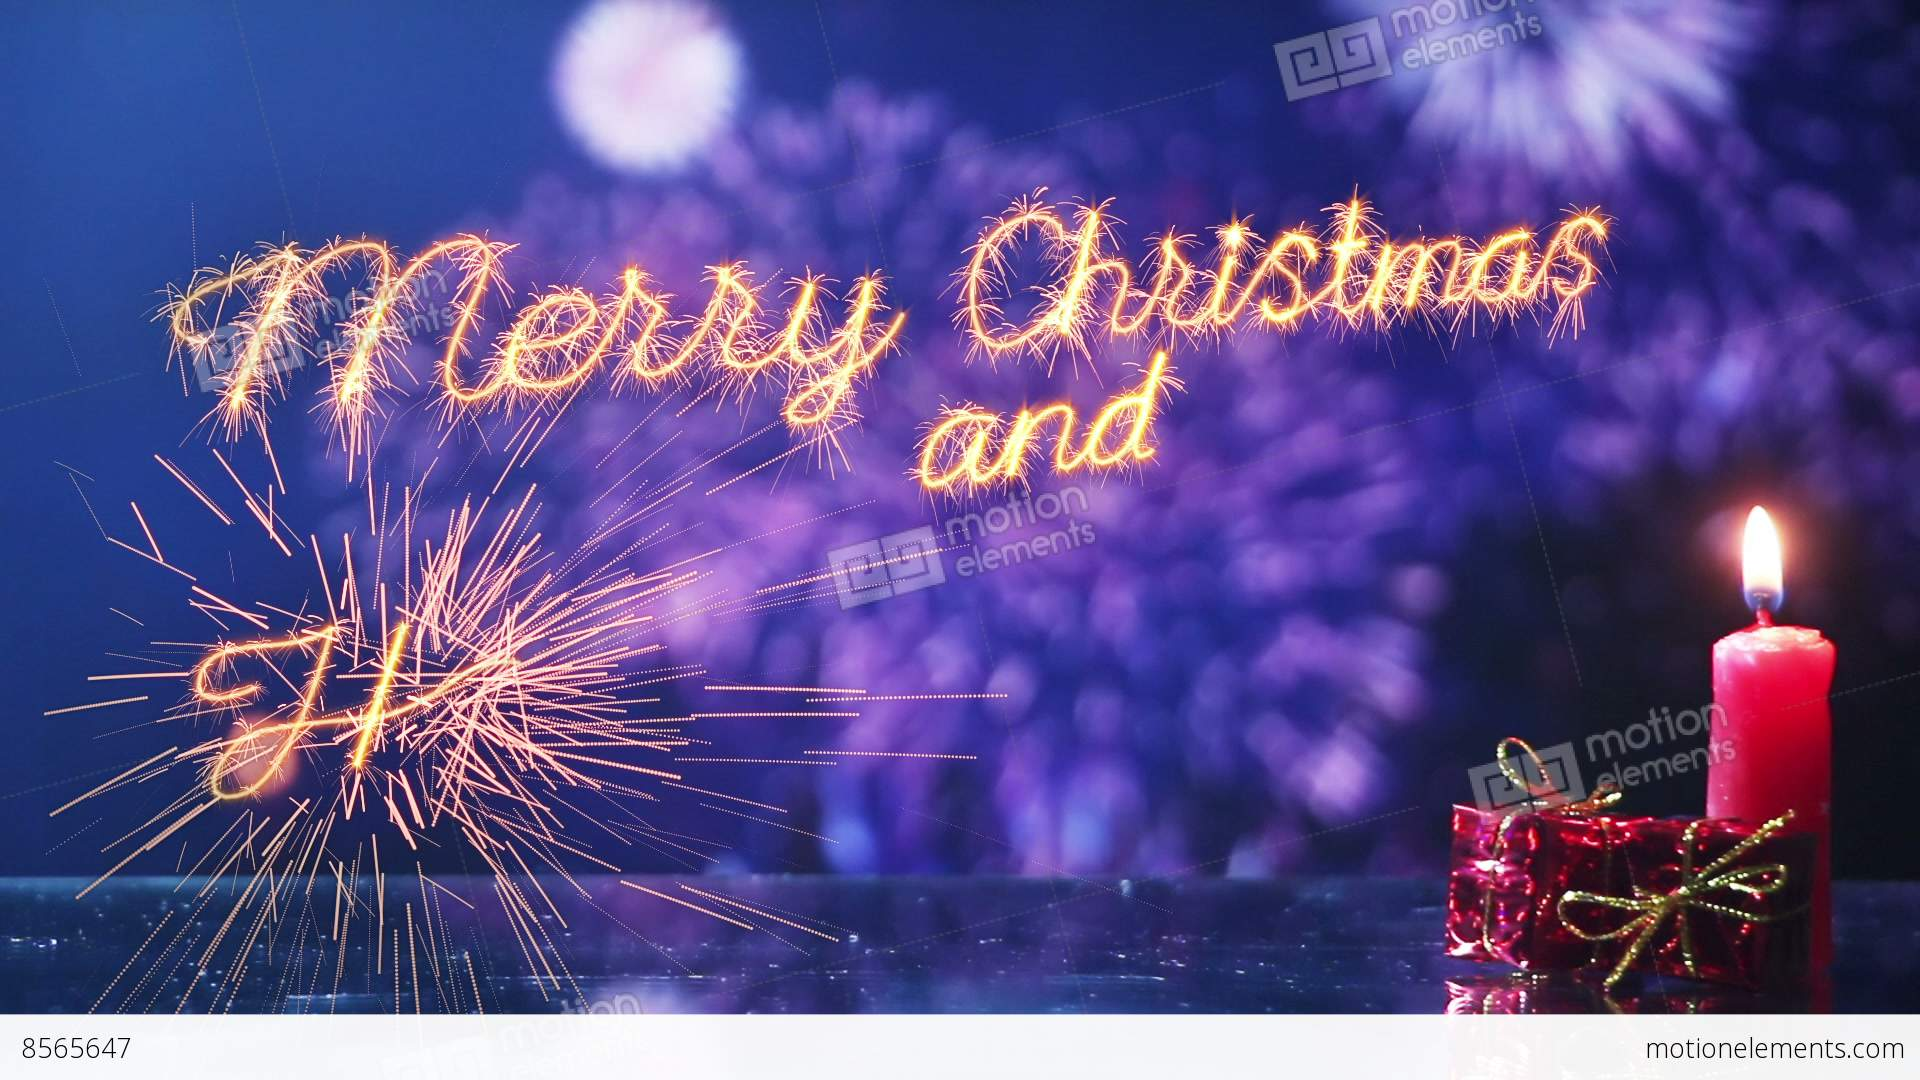 Merry christmas and new year greeting last 10 seconds loop stock merry christmas and new year greeting last 10 seconds loop stock video footage kristyandbryce Image collections